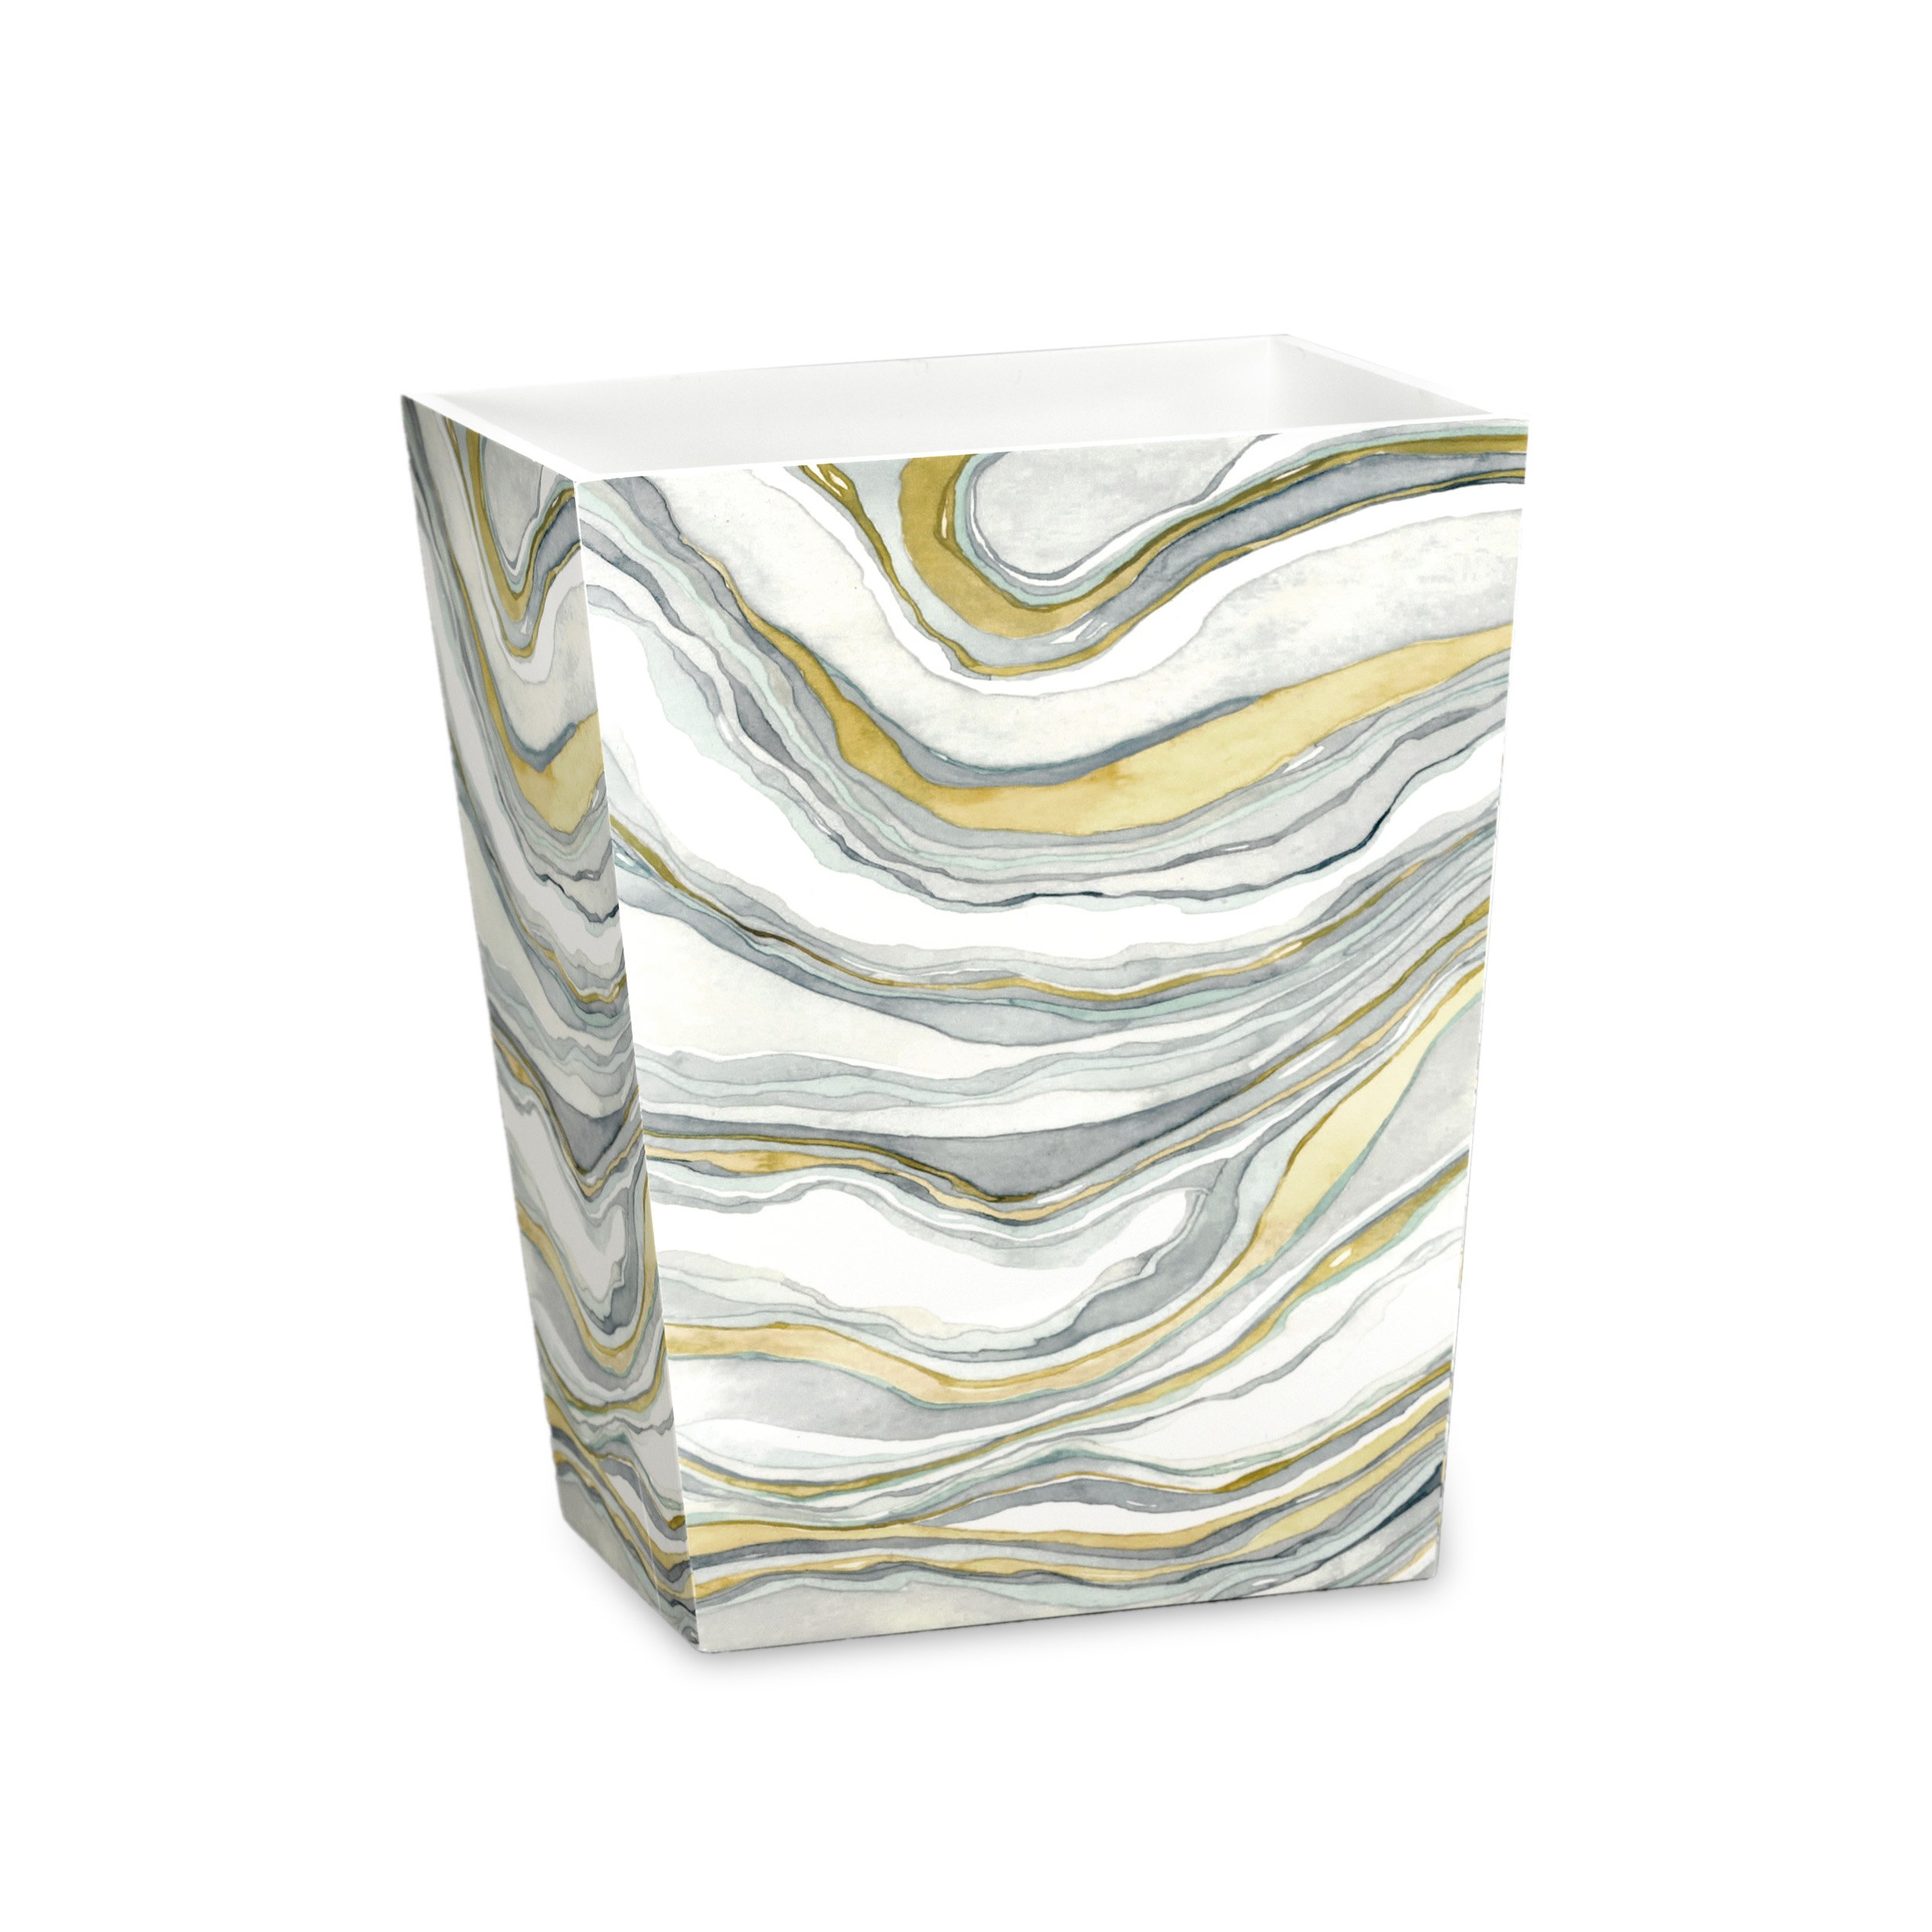 CDM product Shell Rummel Waste Basket, Sand Stone Collection, Multicolor big image